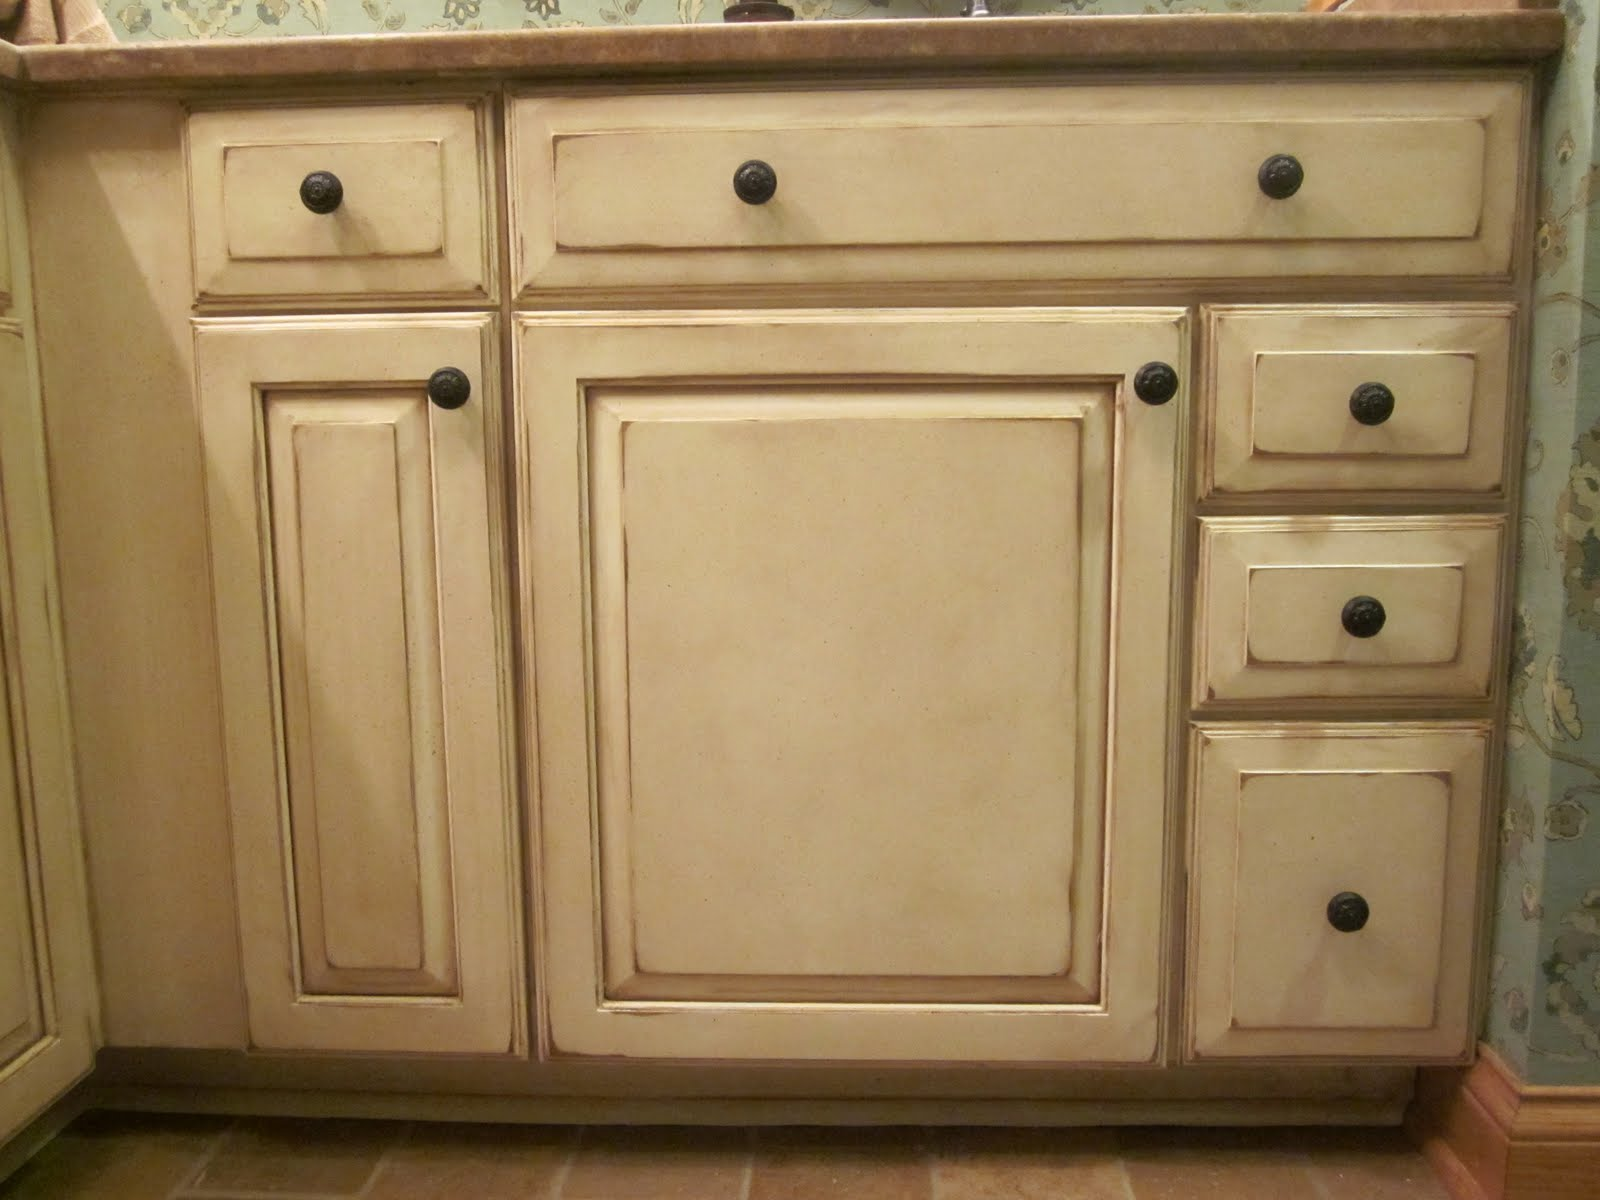 Antique kitchen cupboard - Llc Louisville Faux Hand Painted Cabinets Before And After